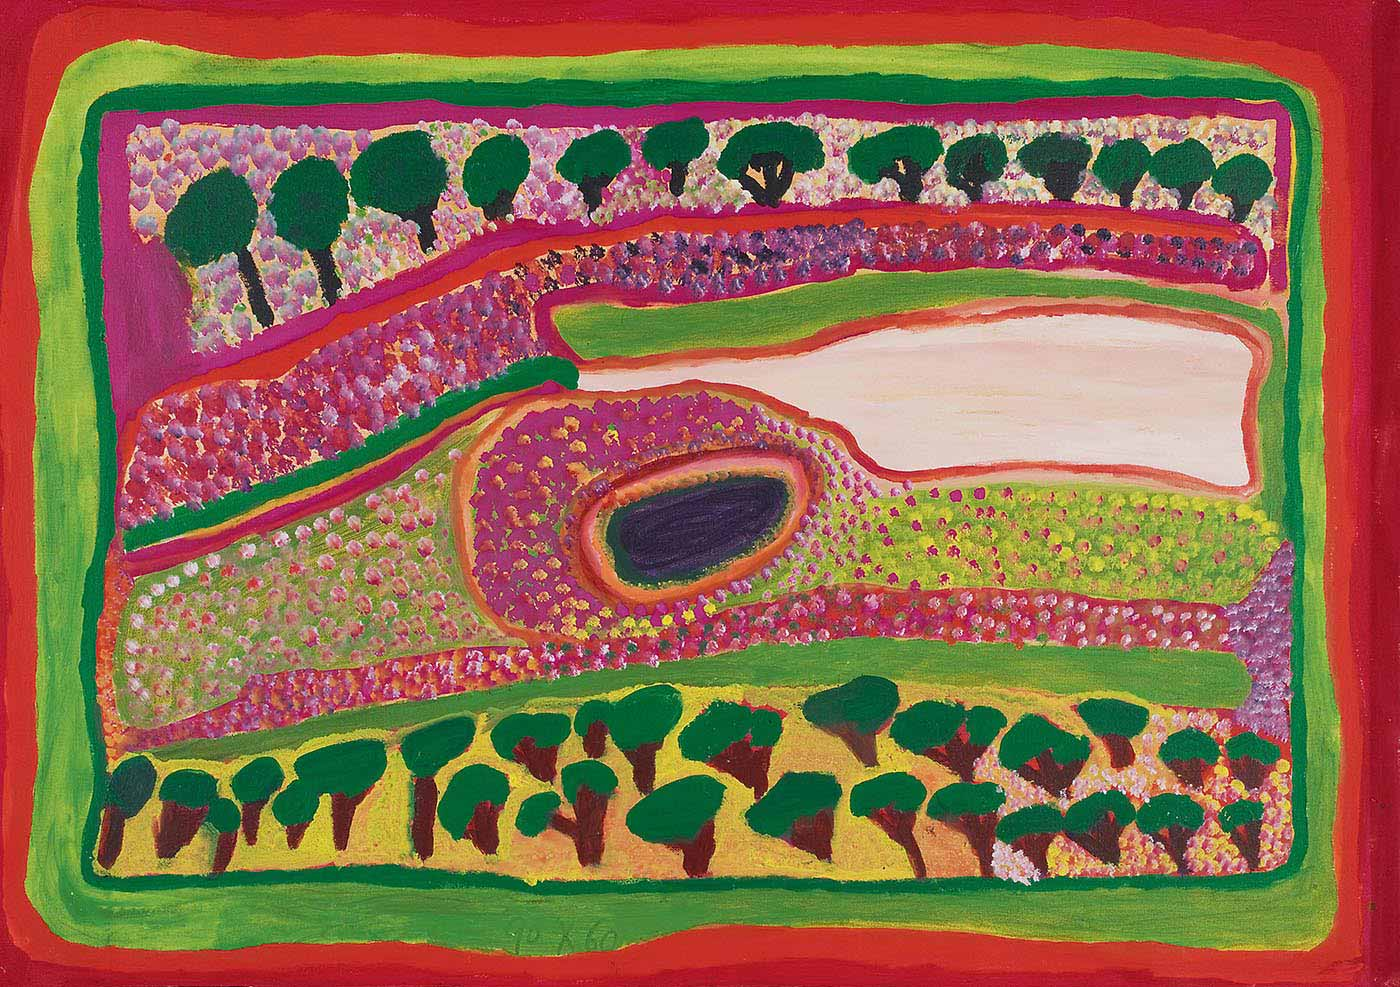 A painting on canvas with rows of trees with brown-black trunks and green foliage against a background of pink or yellow-green at the top and bottom. In the centre there is a dark purple oval shape edged with several bands of colour and surrounded by outlined shapes filled with dots of magenta, red, green, lime, black and white. To the right of the purple oval is a pale peach coloured area. The edge of the painting has multiple borders in red, orange, lime and green.